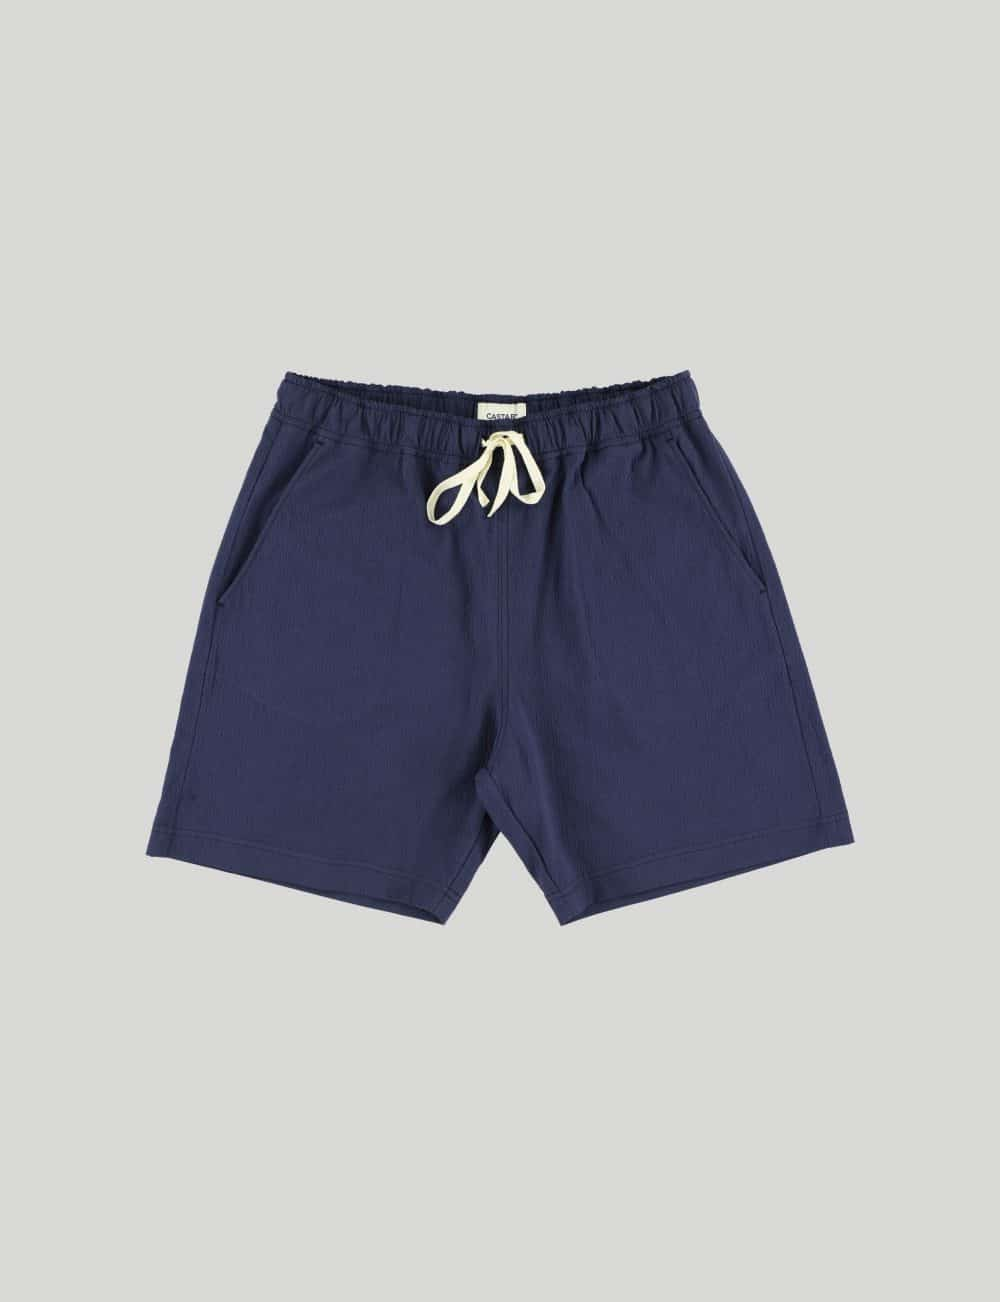 Castart - Tiger Tooth Shorts - Navy Blue